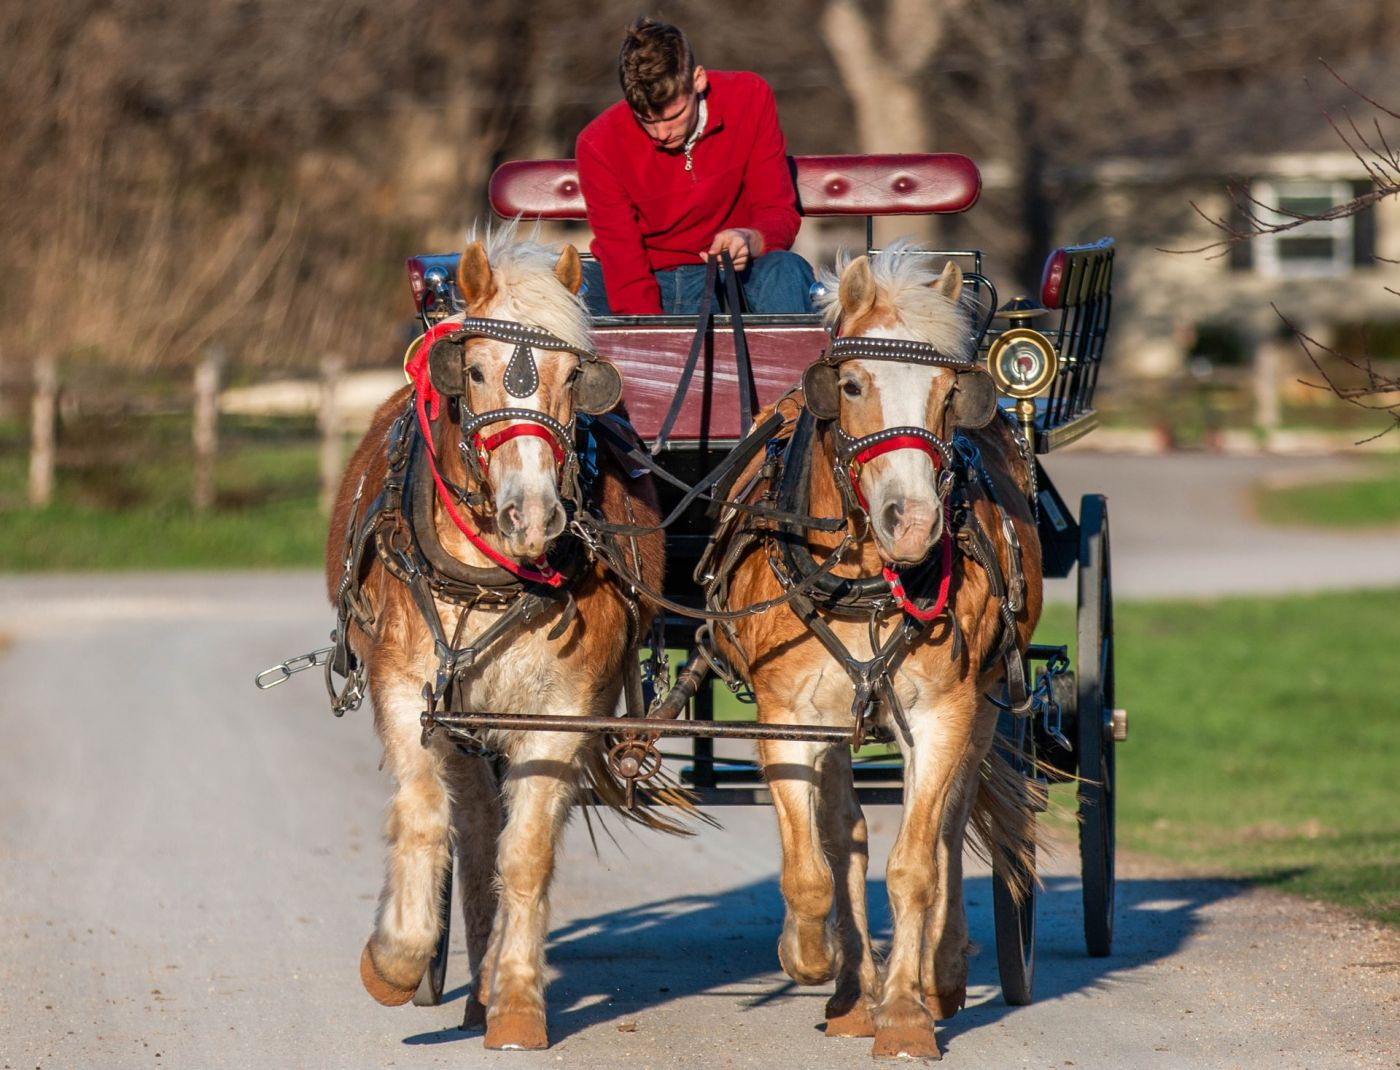 horse drawn carriage tour together in tuscany umbria